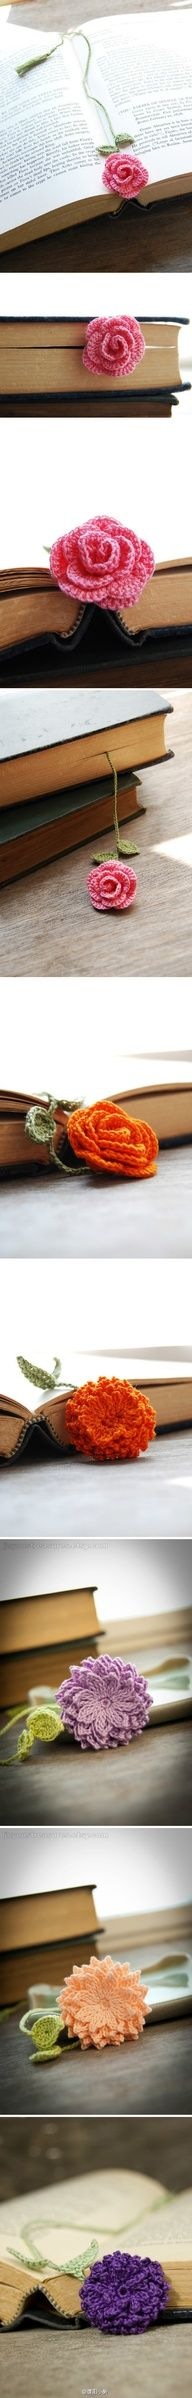 Pretty bookmarks - crochet flowers. Choose your favorite crochet flower pattern and color. Voila! #Recipes